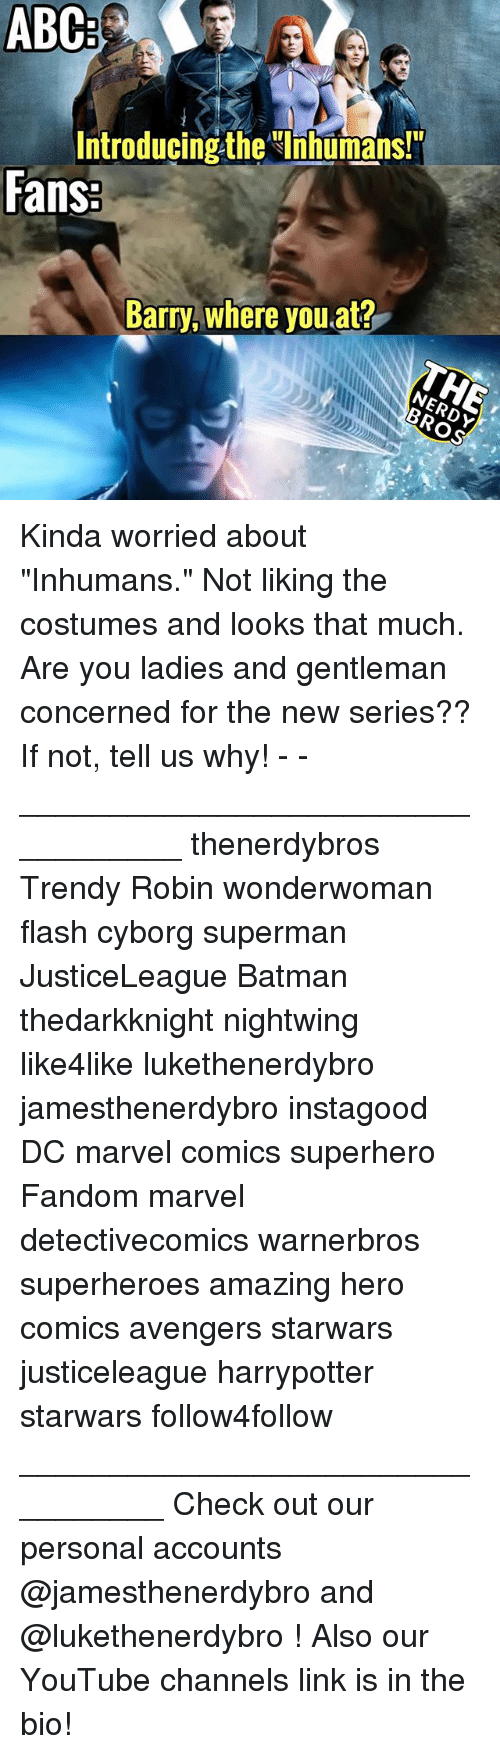 """Gentlemane: ABC  Introducing the Ihhumans!  Fans  Barry, where you at? Kinda worried about """"Inhumans."""" Not liking the costumes and looks that much. Are you ladies and gentleman concerned for the new series?? If not, tell us why! - - __________________________________ thenerdybros Trendy Robin wonderwoman flash cyborg superman JusticeLeague Batman thedarkknight nightwing like4like lukethenerdybro jamesthenerdybro instagood DC marvel comics superhero Fandom marvel detectivecomics warnerbros superheroes amazing hero comics avengers starwars justiceleague harrypotter starwars follow4follow _________________________________ Check out our personal accounts @jamesthenerdybro and @lukethenerdybro ! Also our YouTube channels link is in the bio!"""